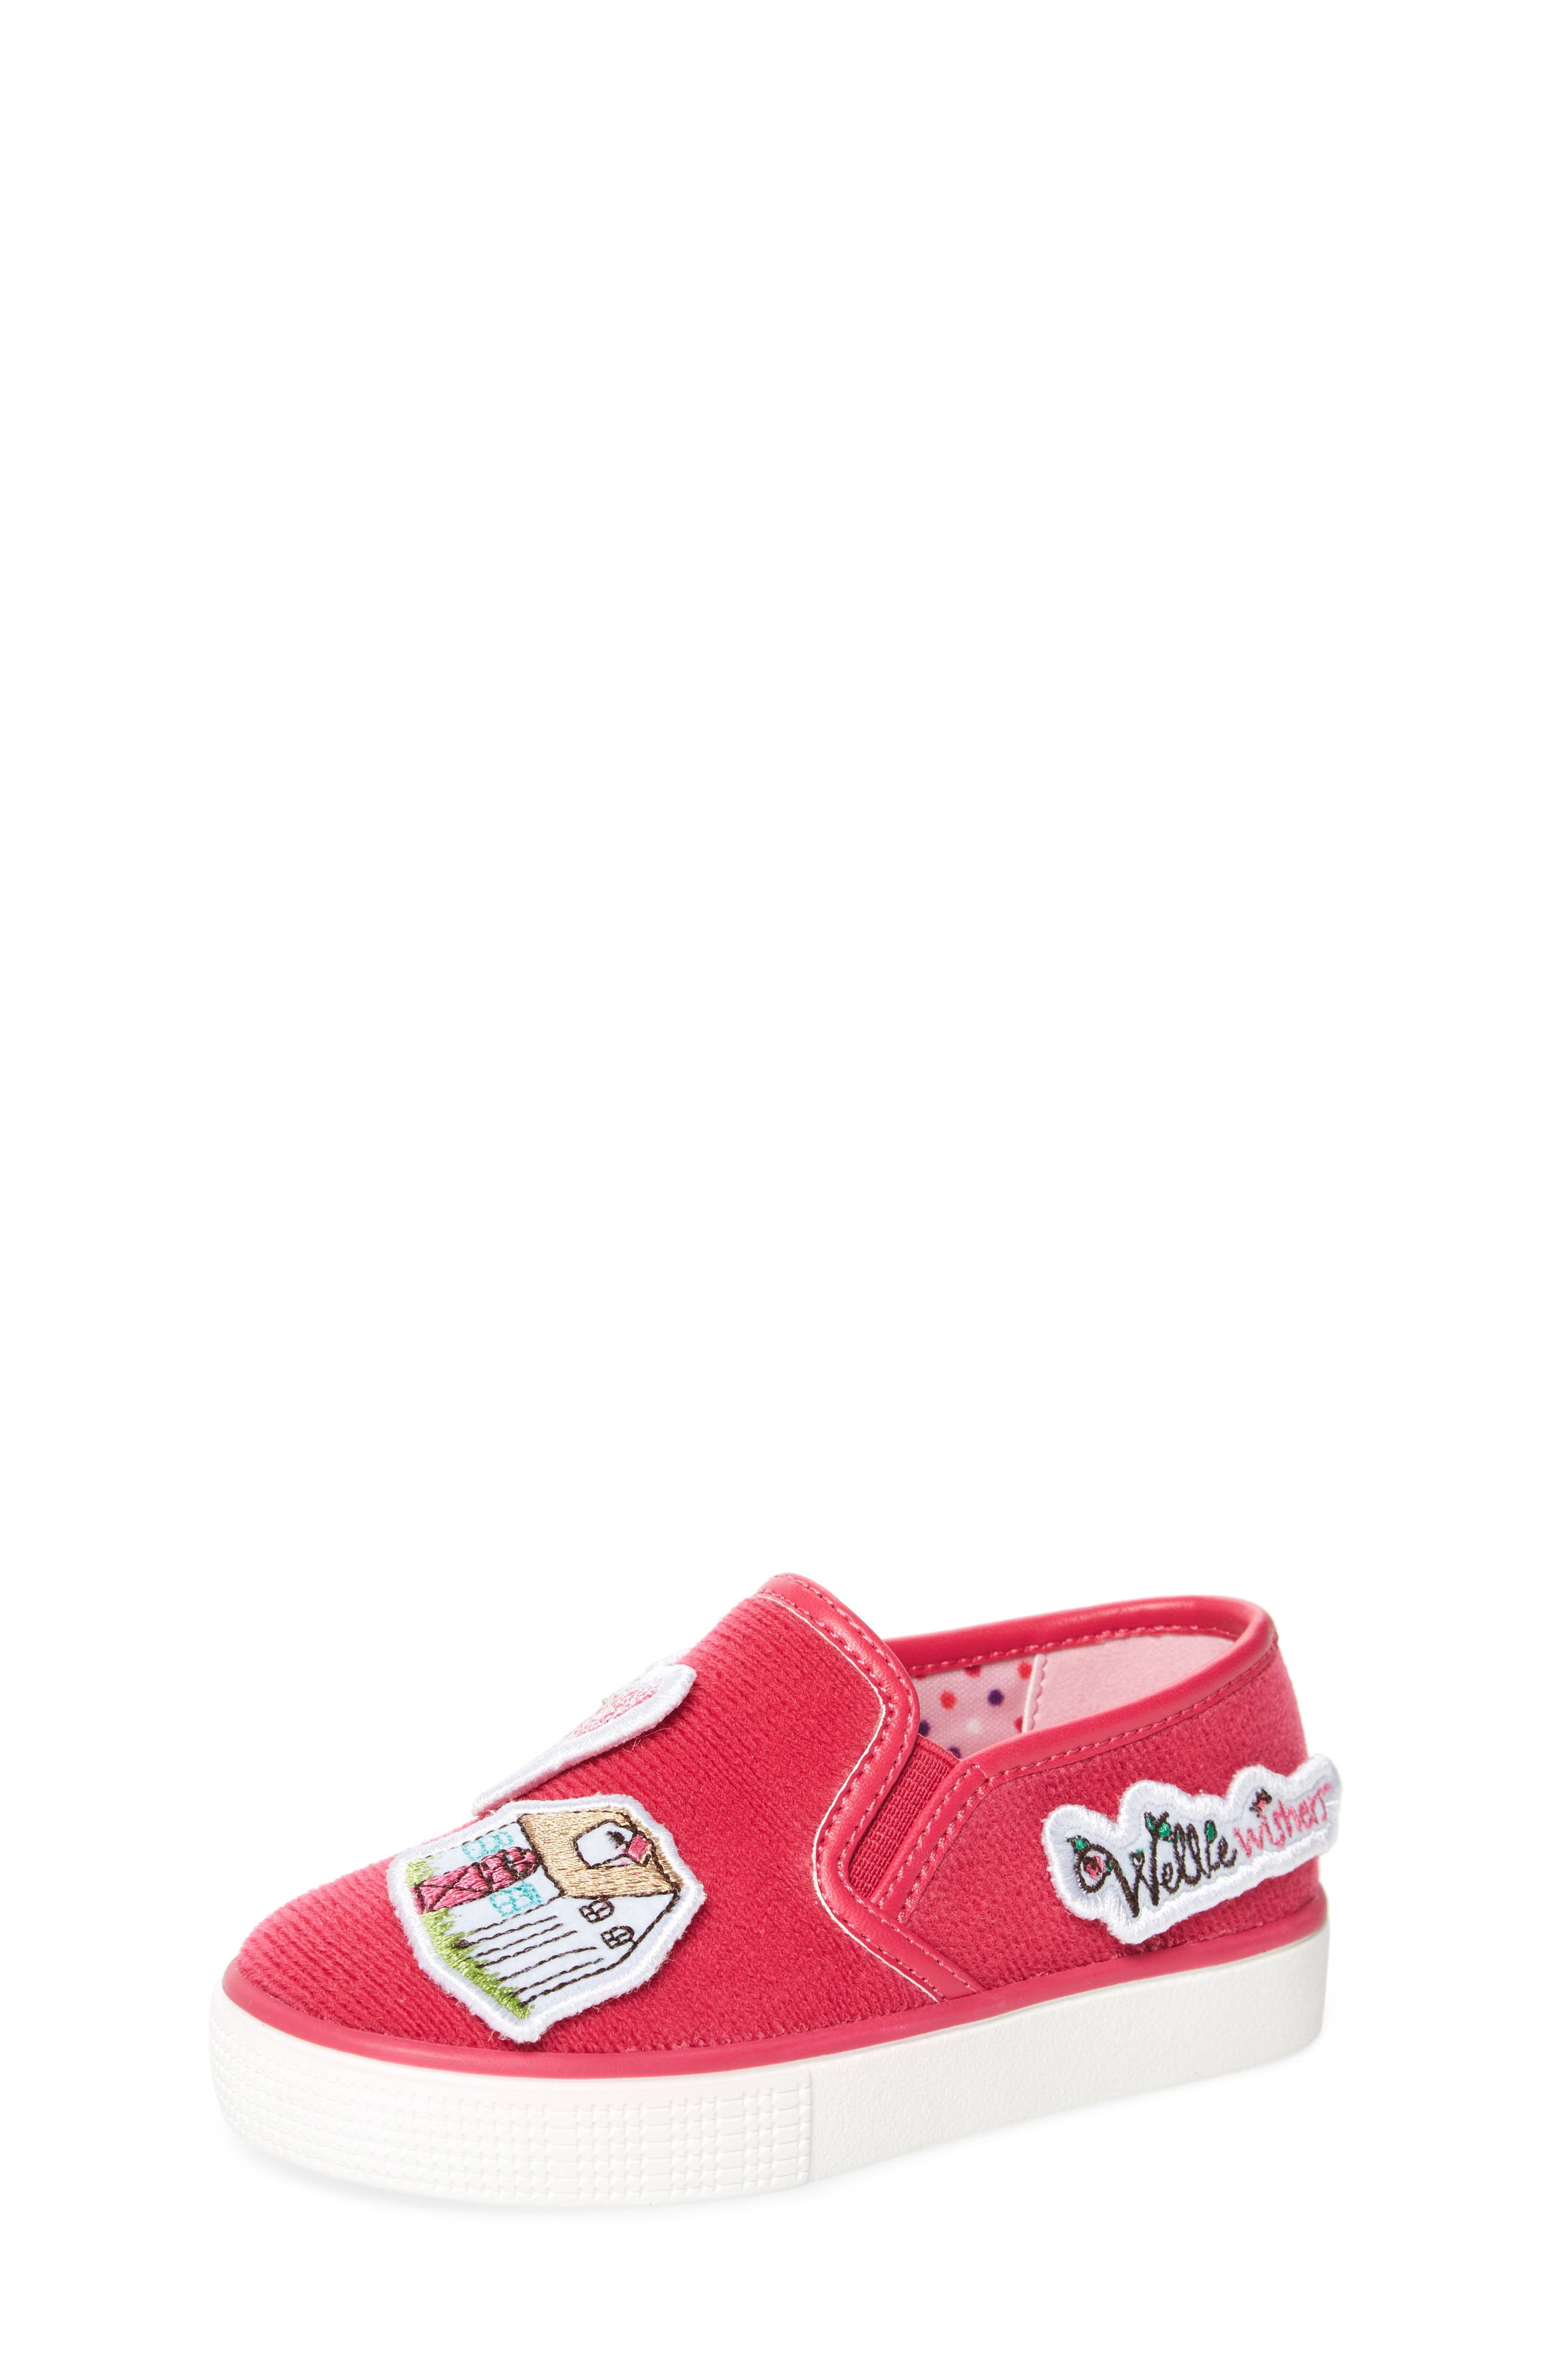 Patch Slip-On Sneaker,                             Main thumbnail 1, color,                             650